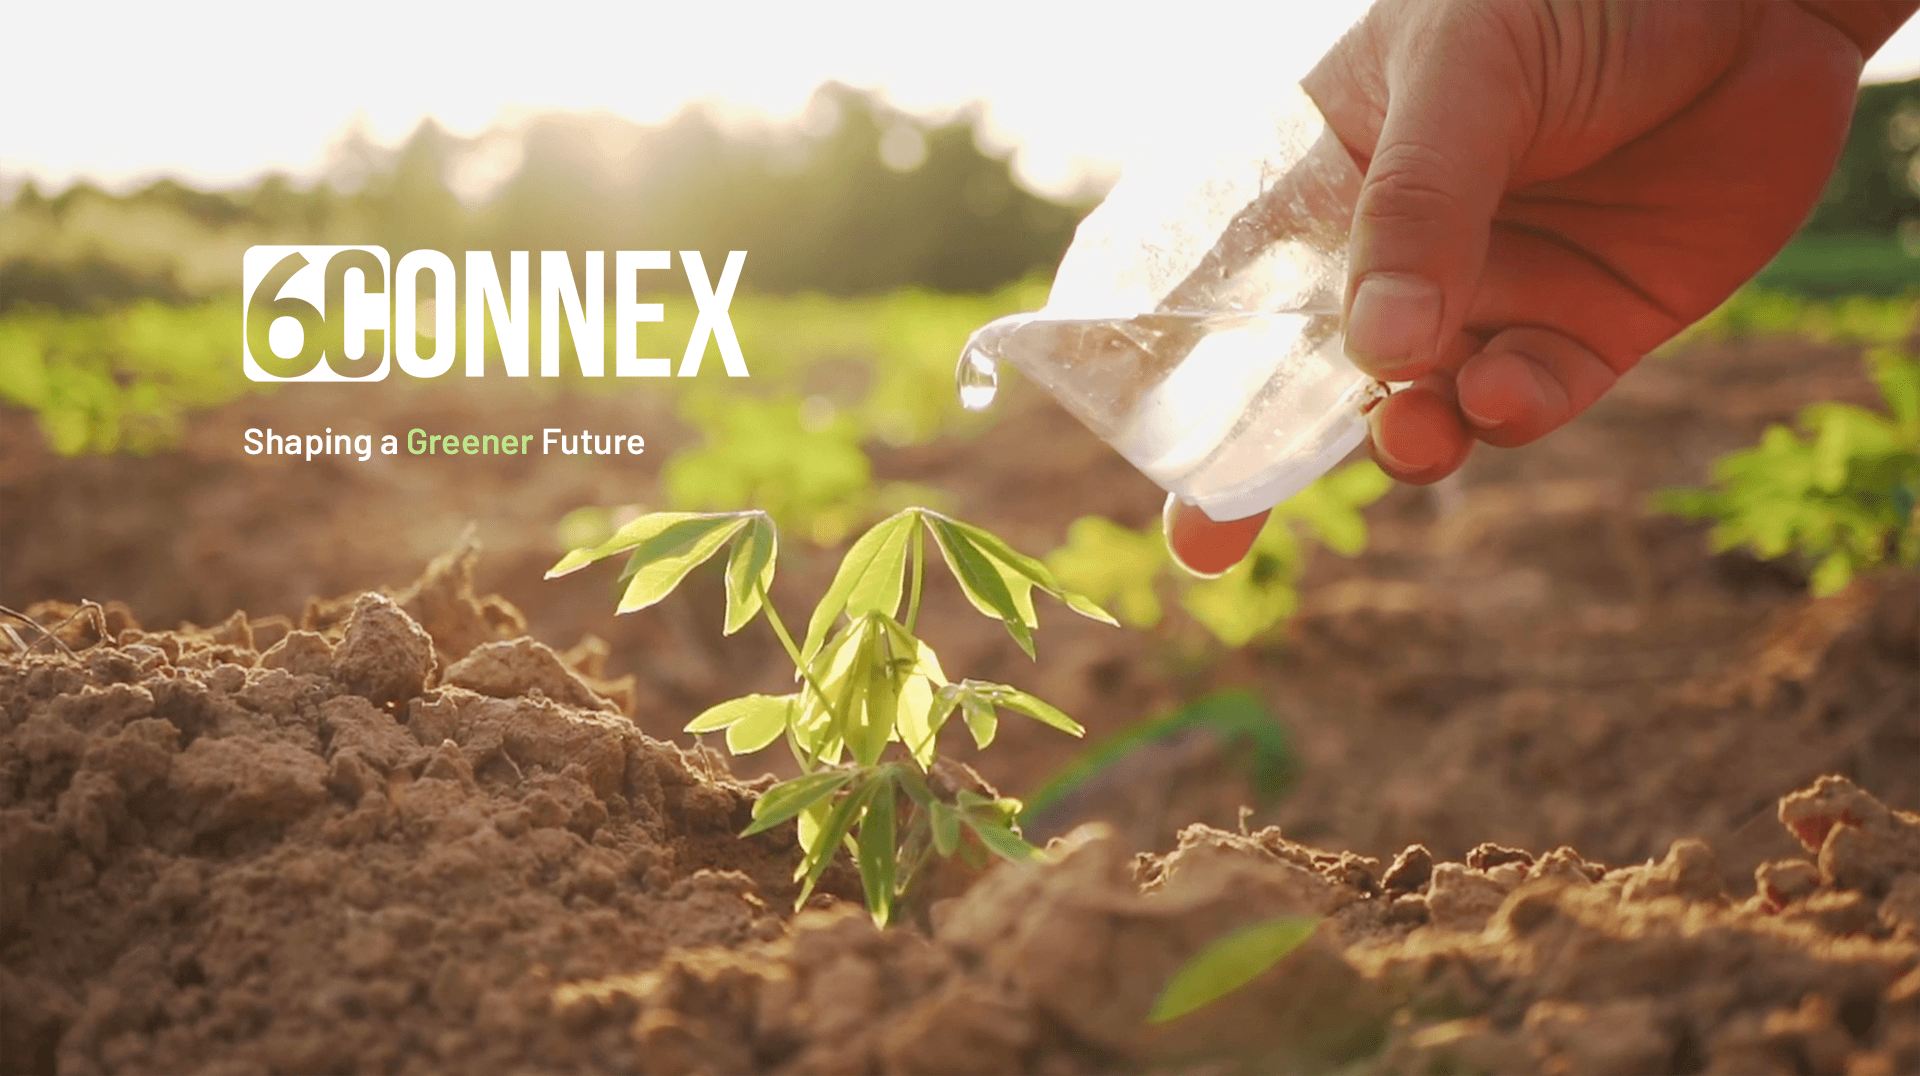 6connex sustainability person watering green plant in dirt